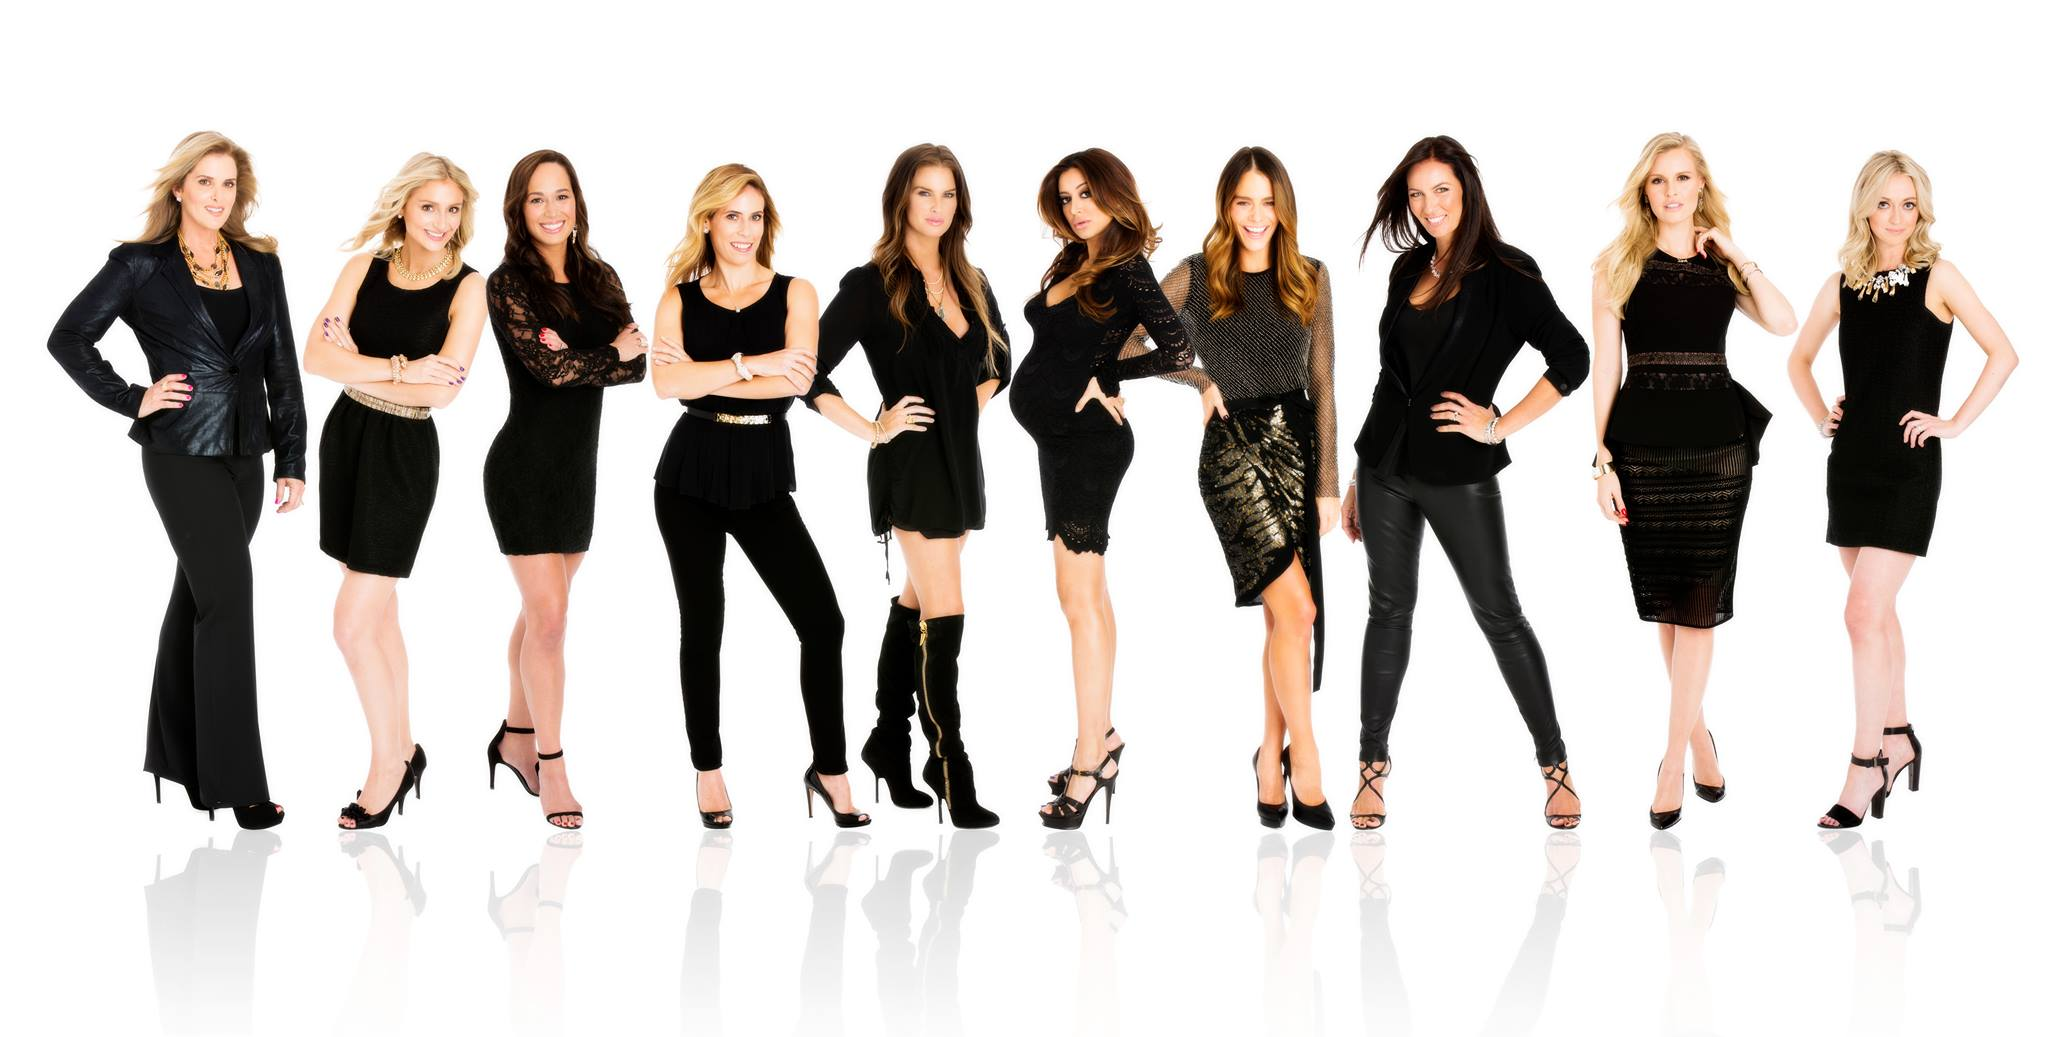 The Real Housewives of the NHL comes to TV!